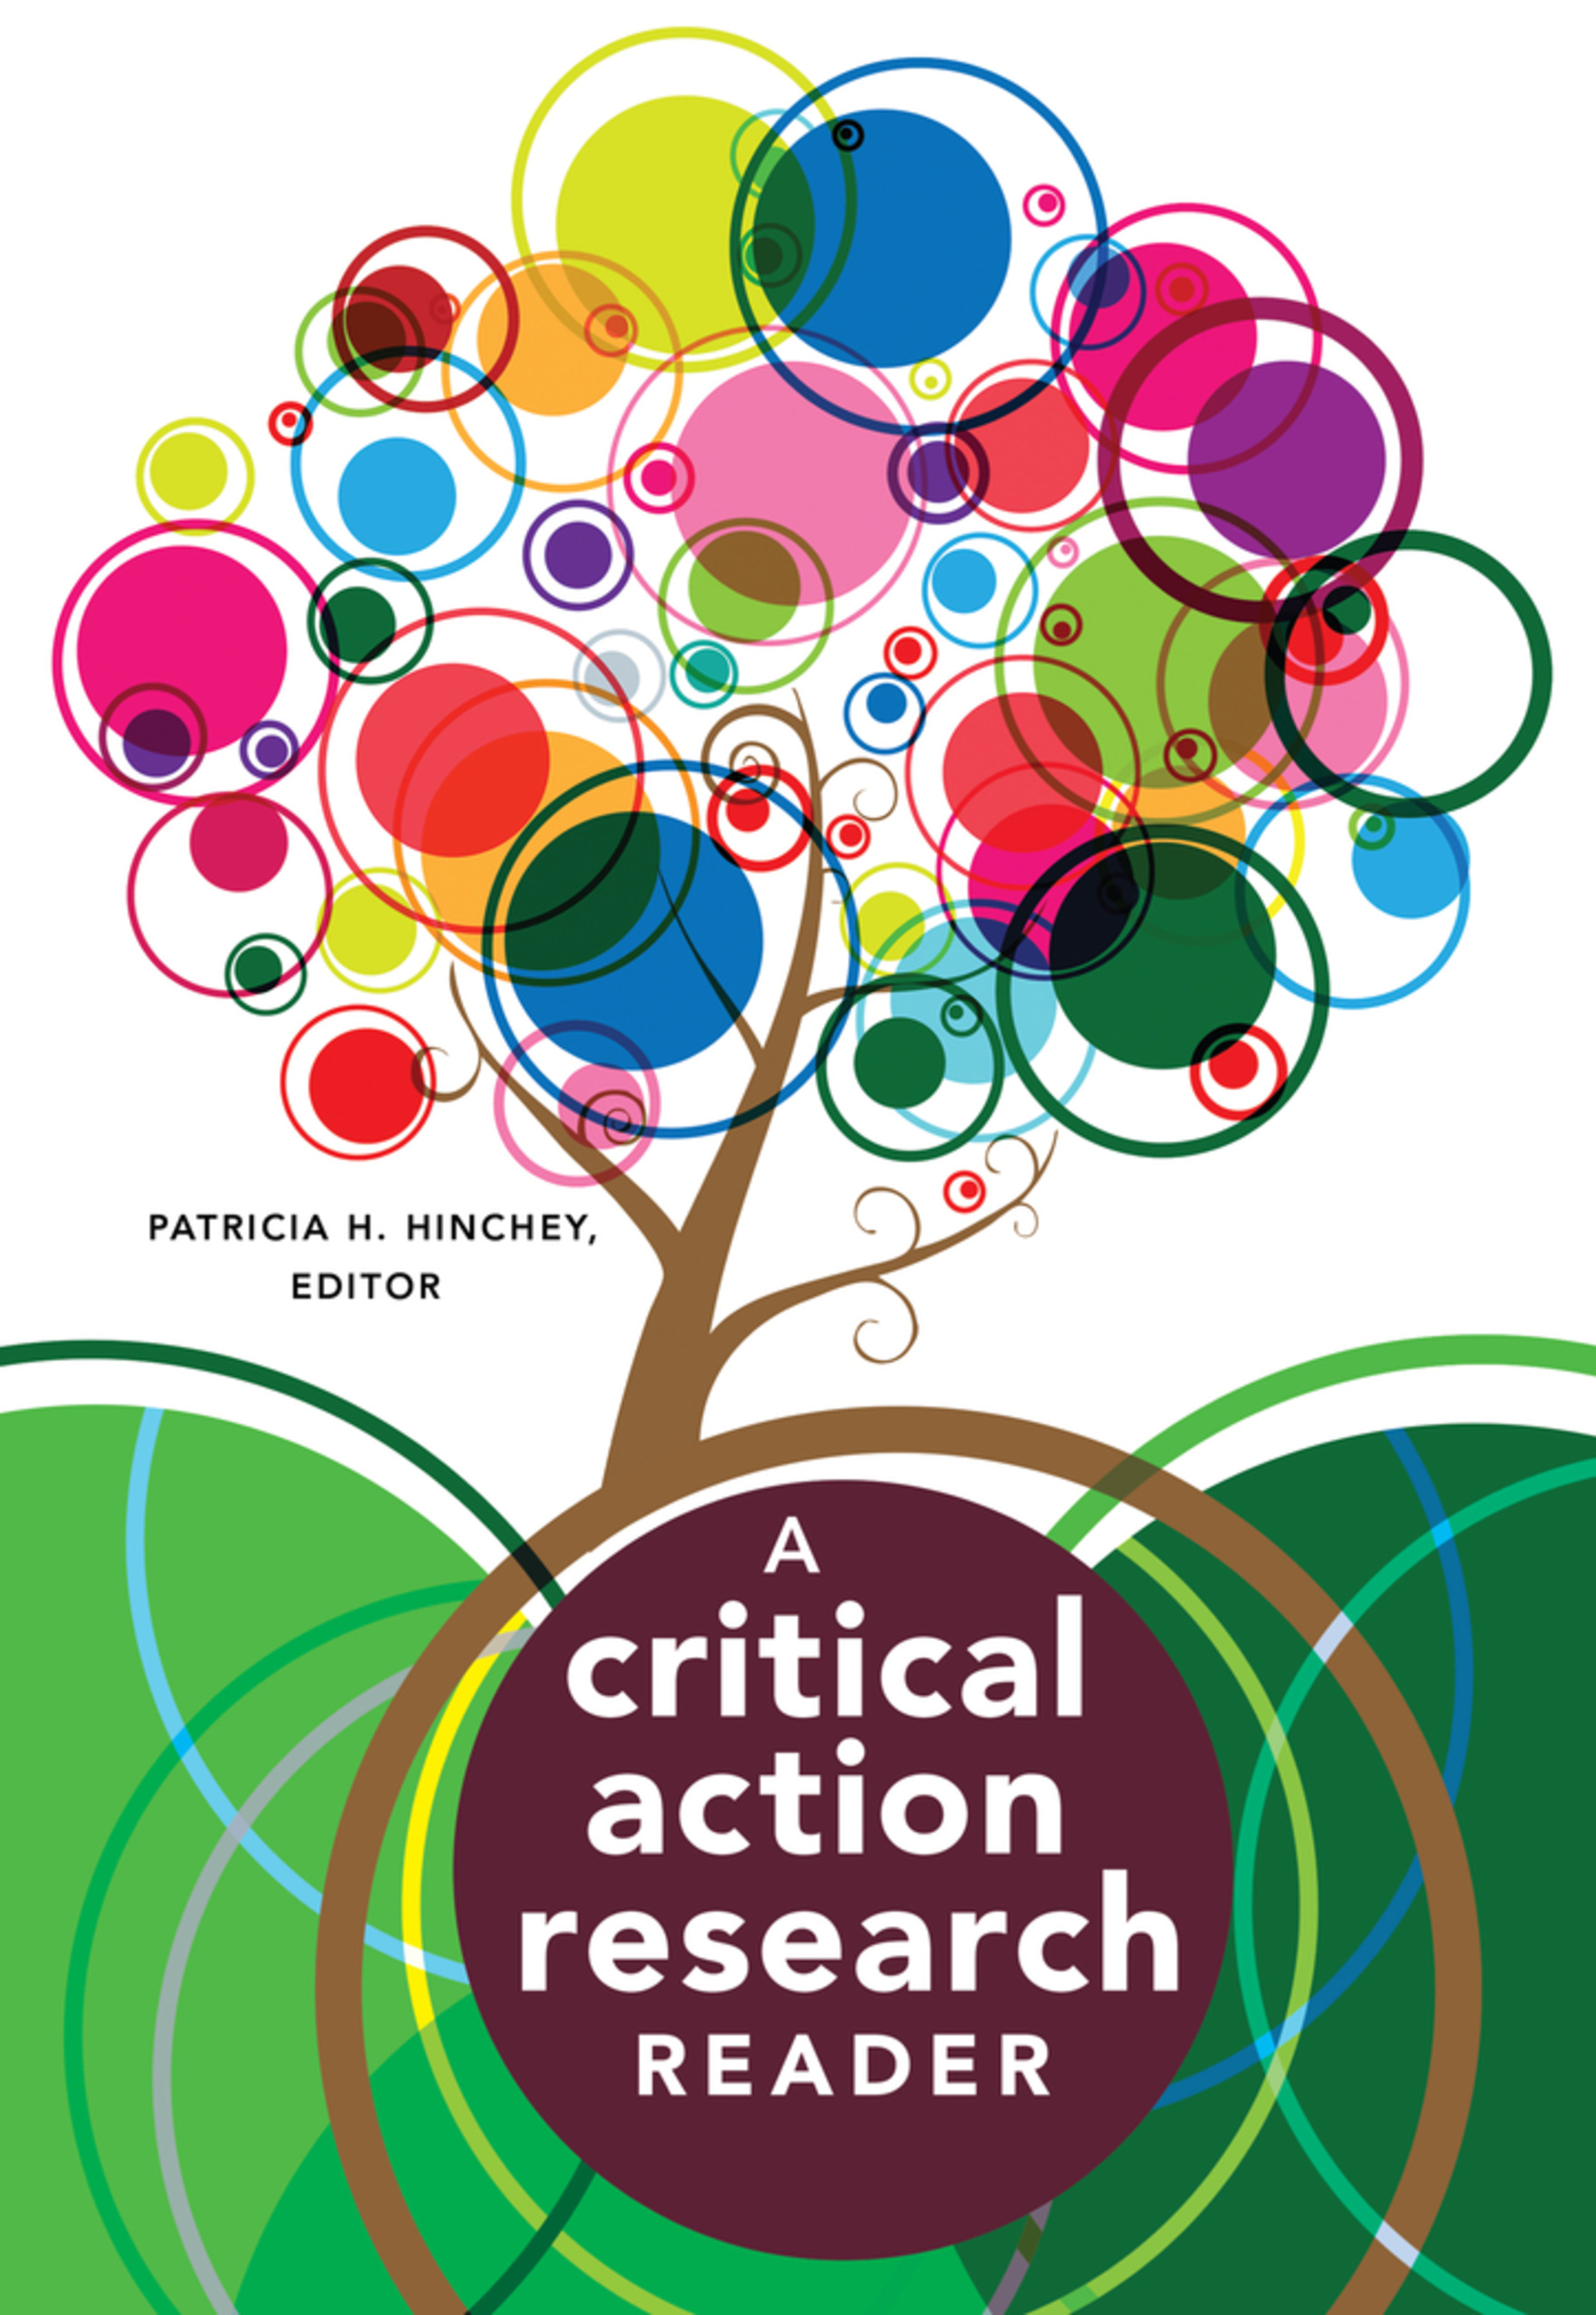 Title: A Critical Action Research Reader